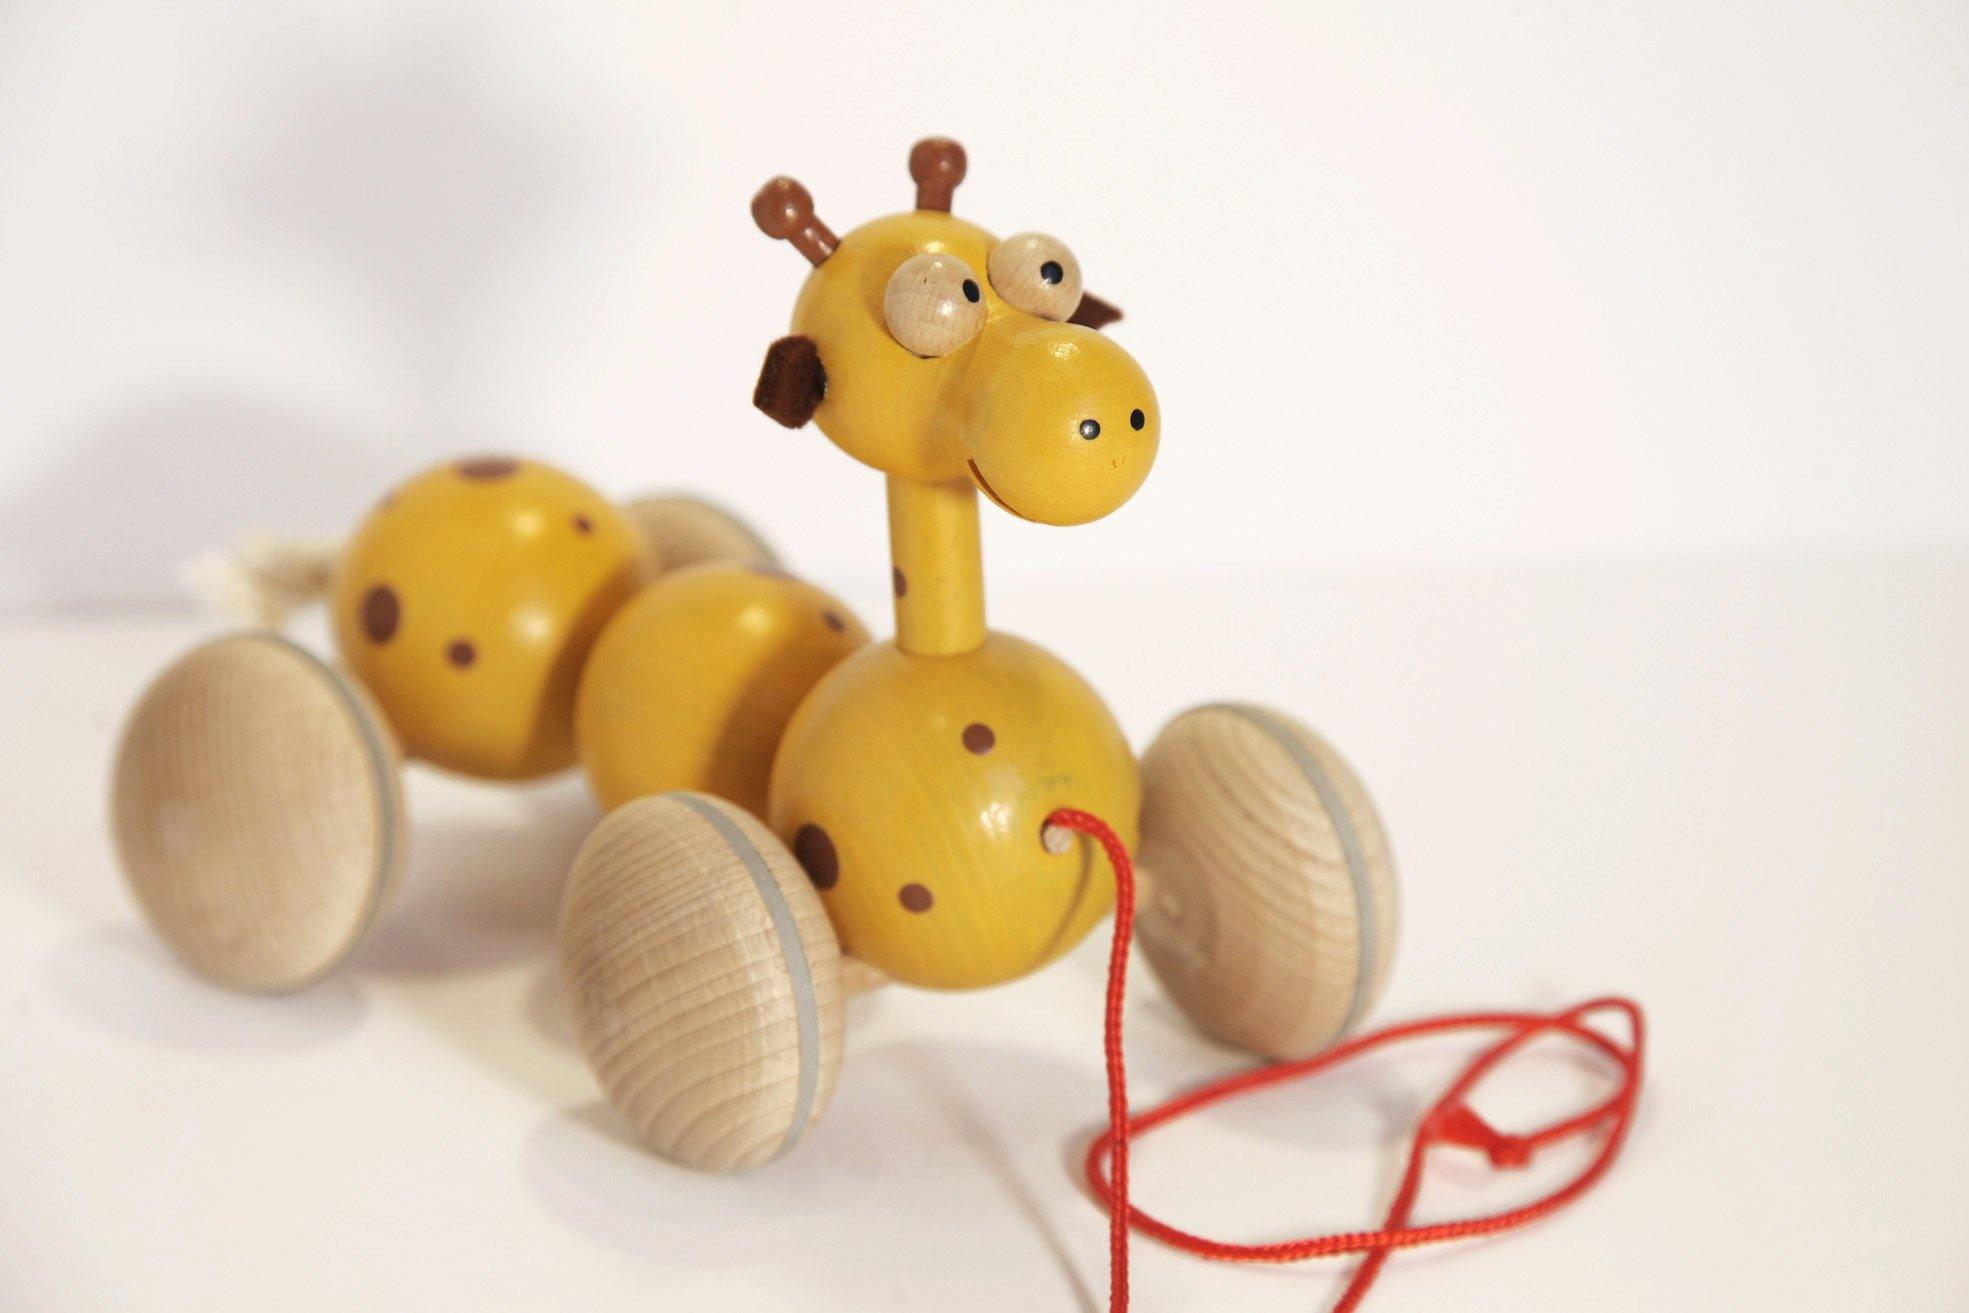 Wooden Giraffe Pull Along made by U+Me